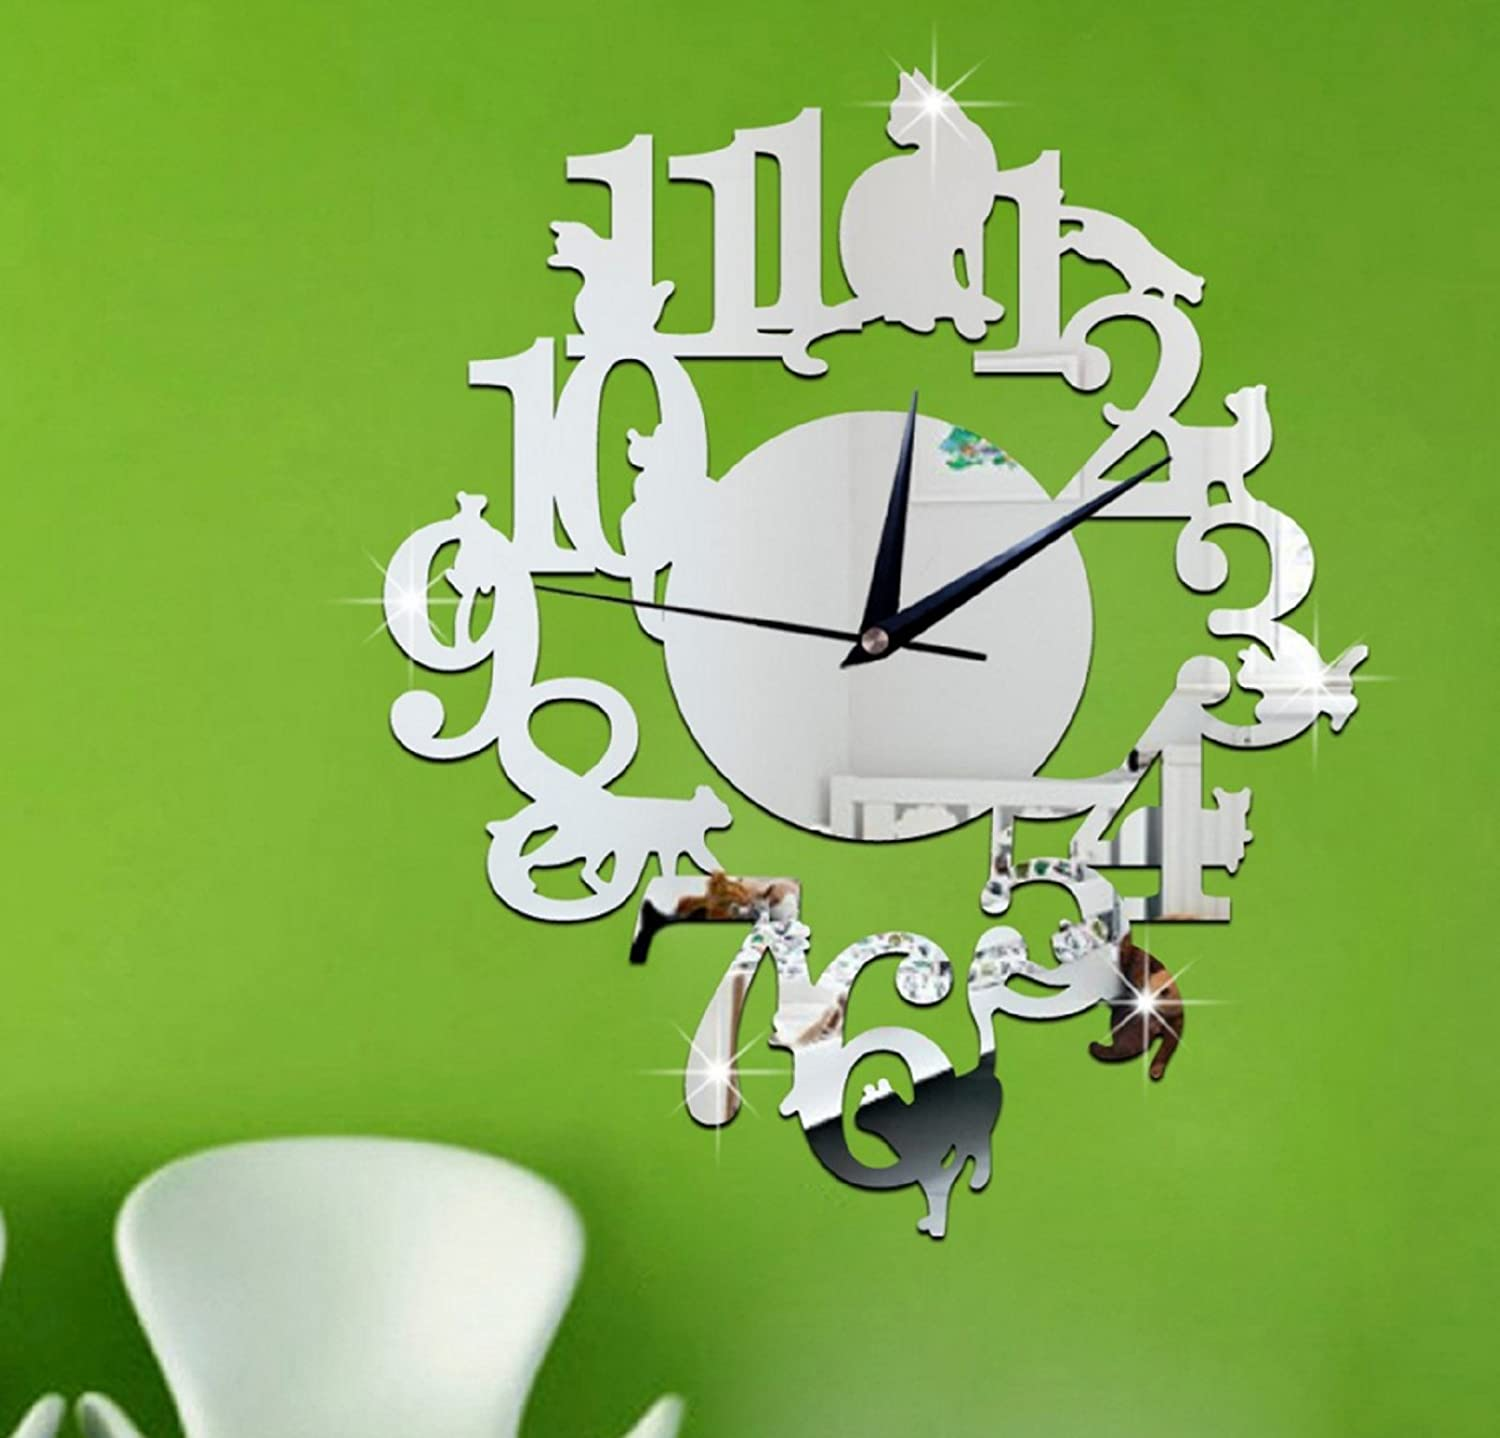 Amazon.com: (Silver Color) NEW home decor wandklok creative wall watch reloj Acrylic Cats Lovery large 3d vintage wall clocks modern design murale reloj ...